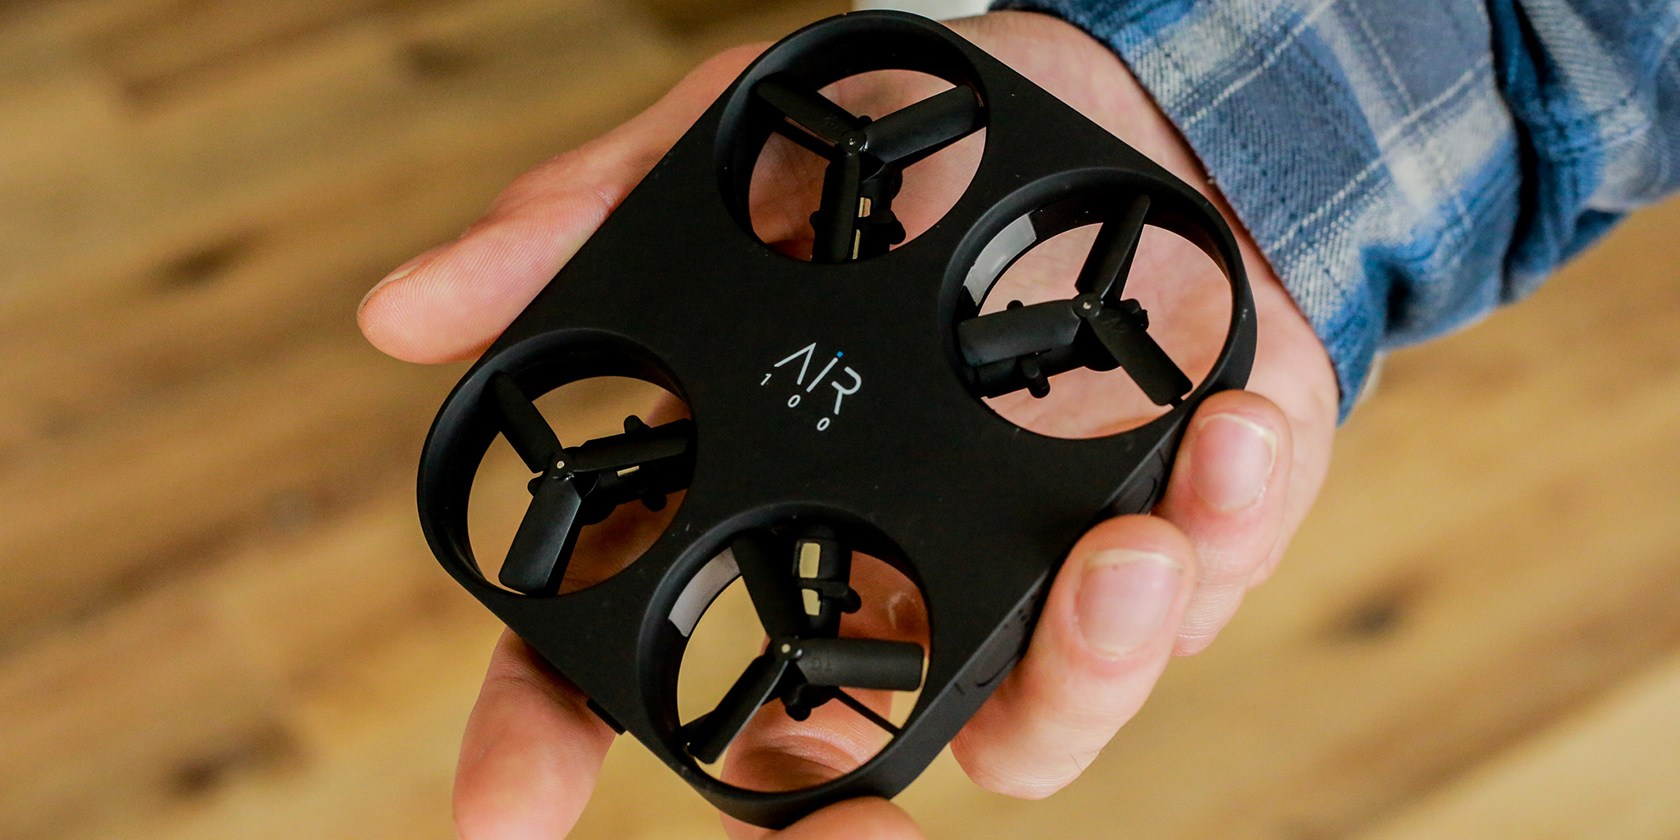 AIR PIX: The Pocket-Sized Selfie Drone You Can Control With Your Phone